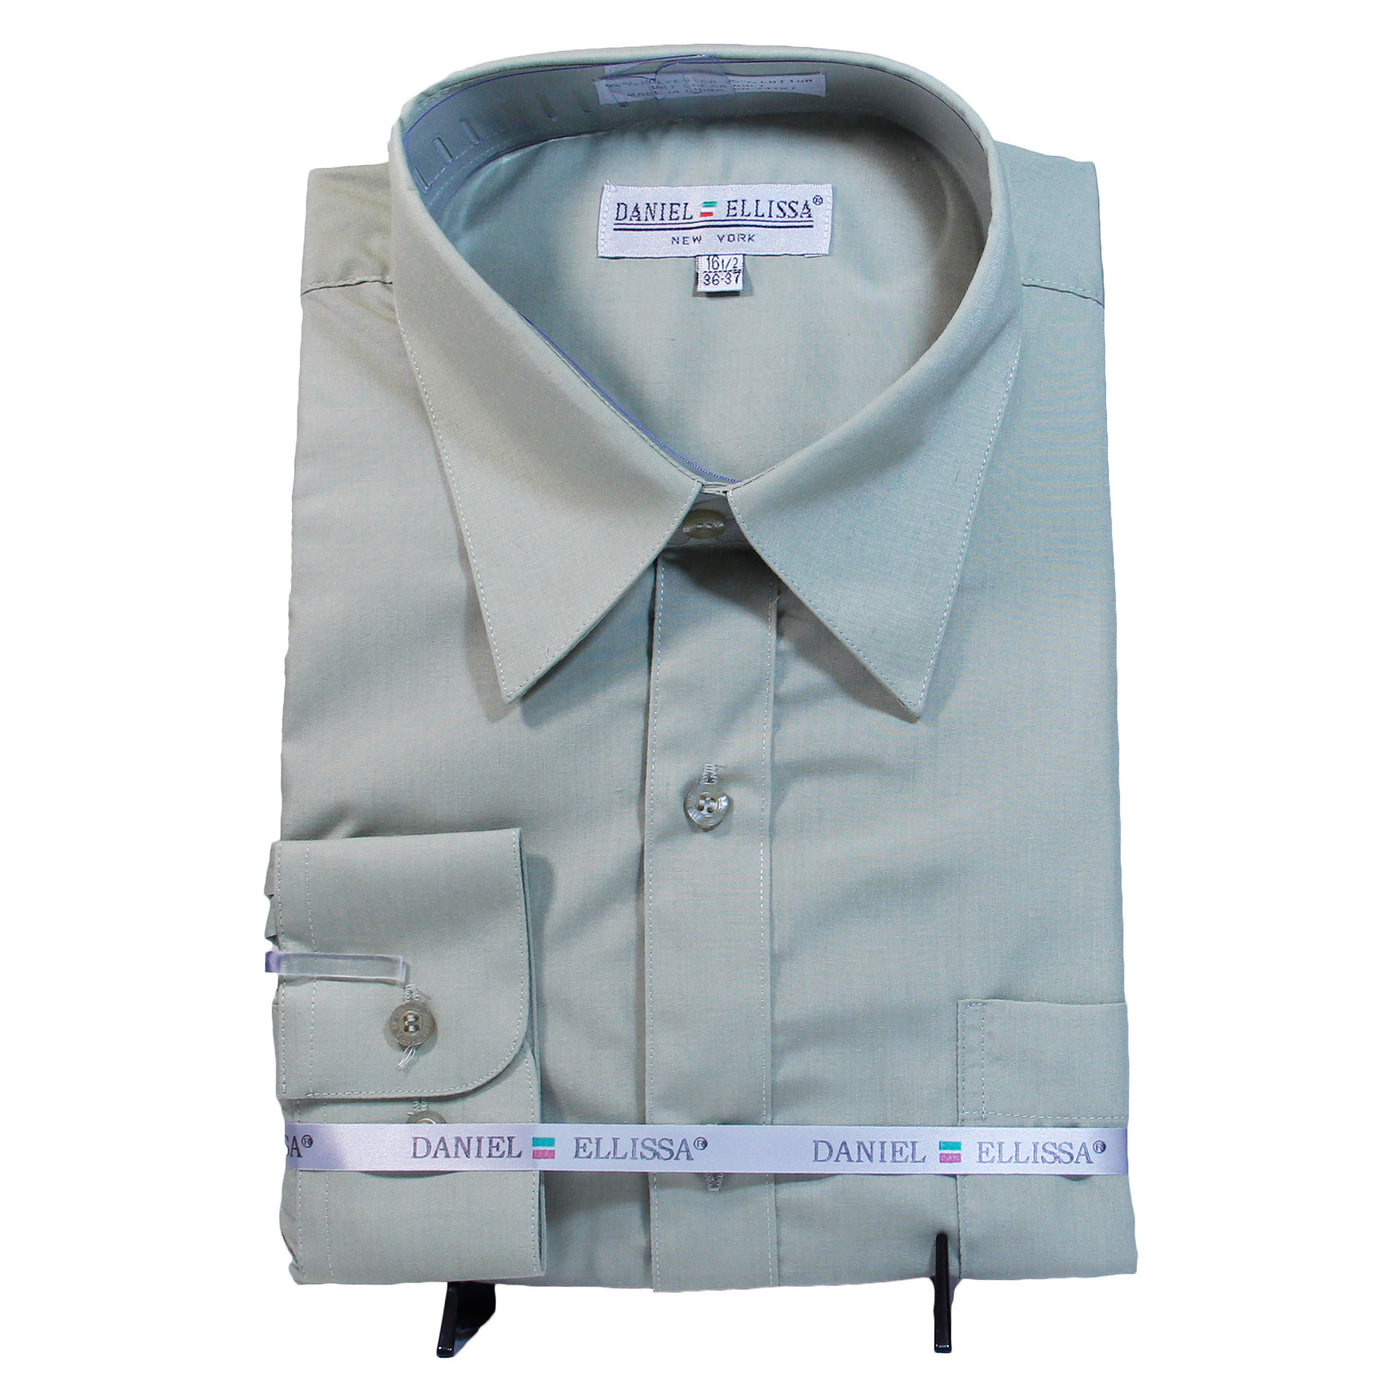 Solid Mint Green Daniel Ellissa Dress Shirt Step N Style Fashion